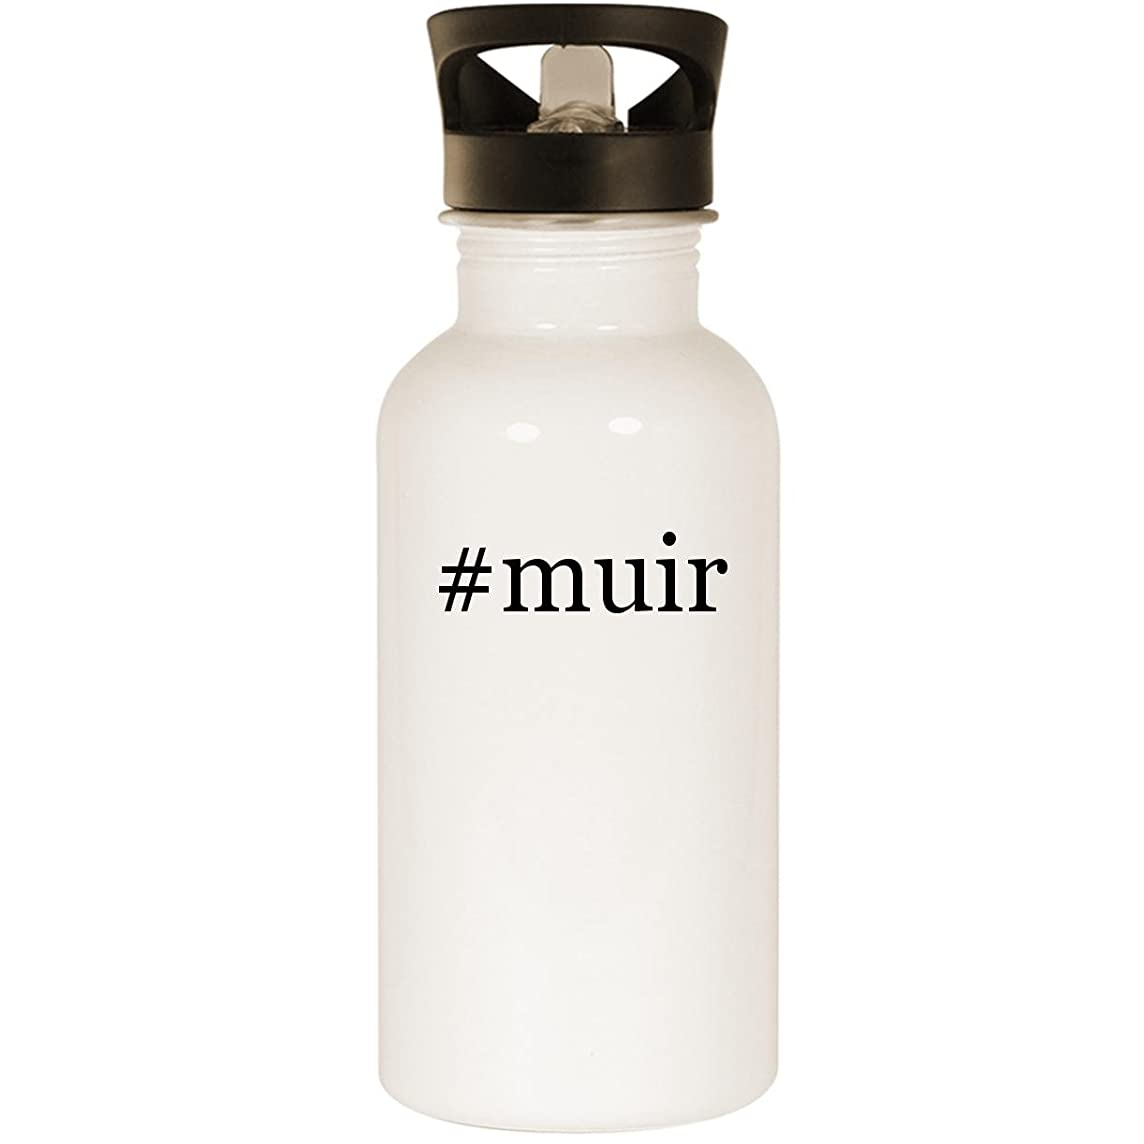 #muir - Stainless Steel Hashtag 20oz Road Ready Water Bottle, White